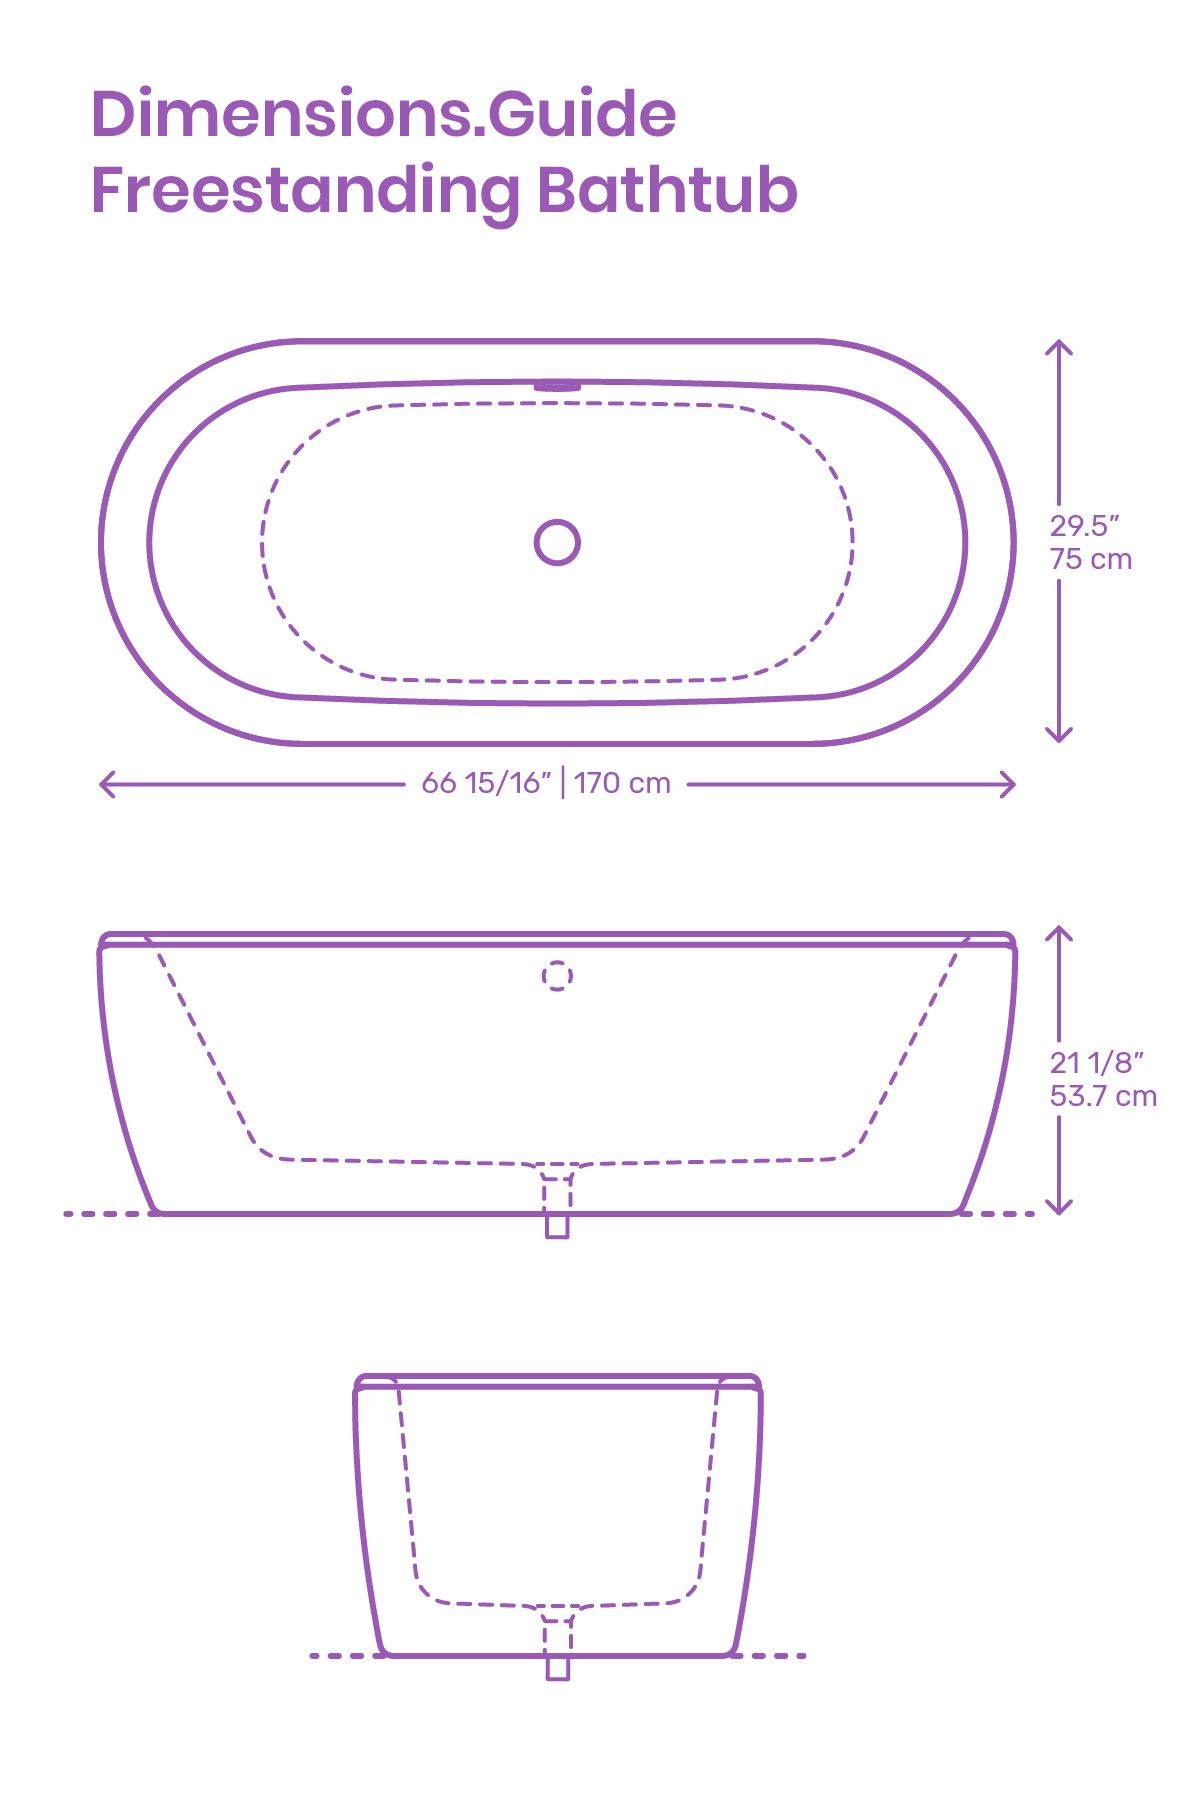 Freestanding Bathtubs Are Fixtures That Stand Independent Of Any